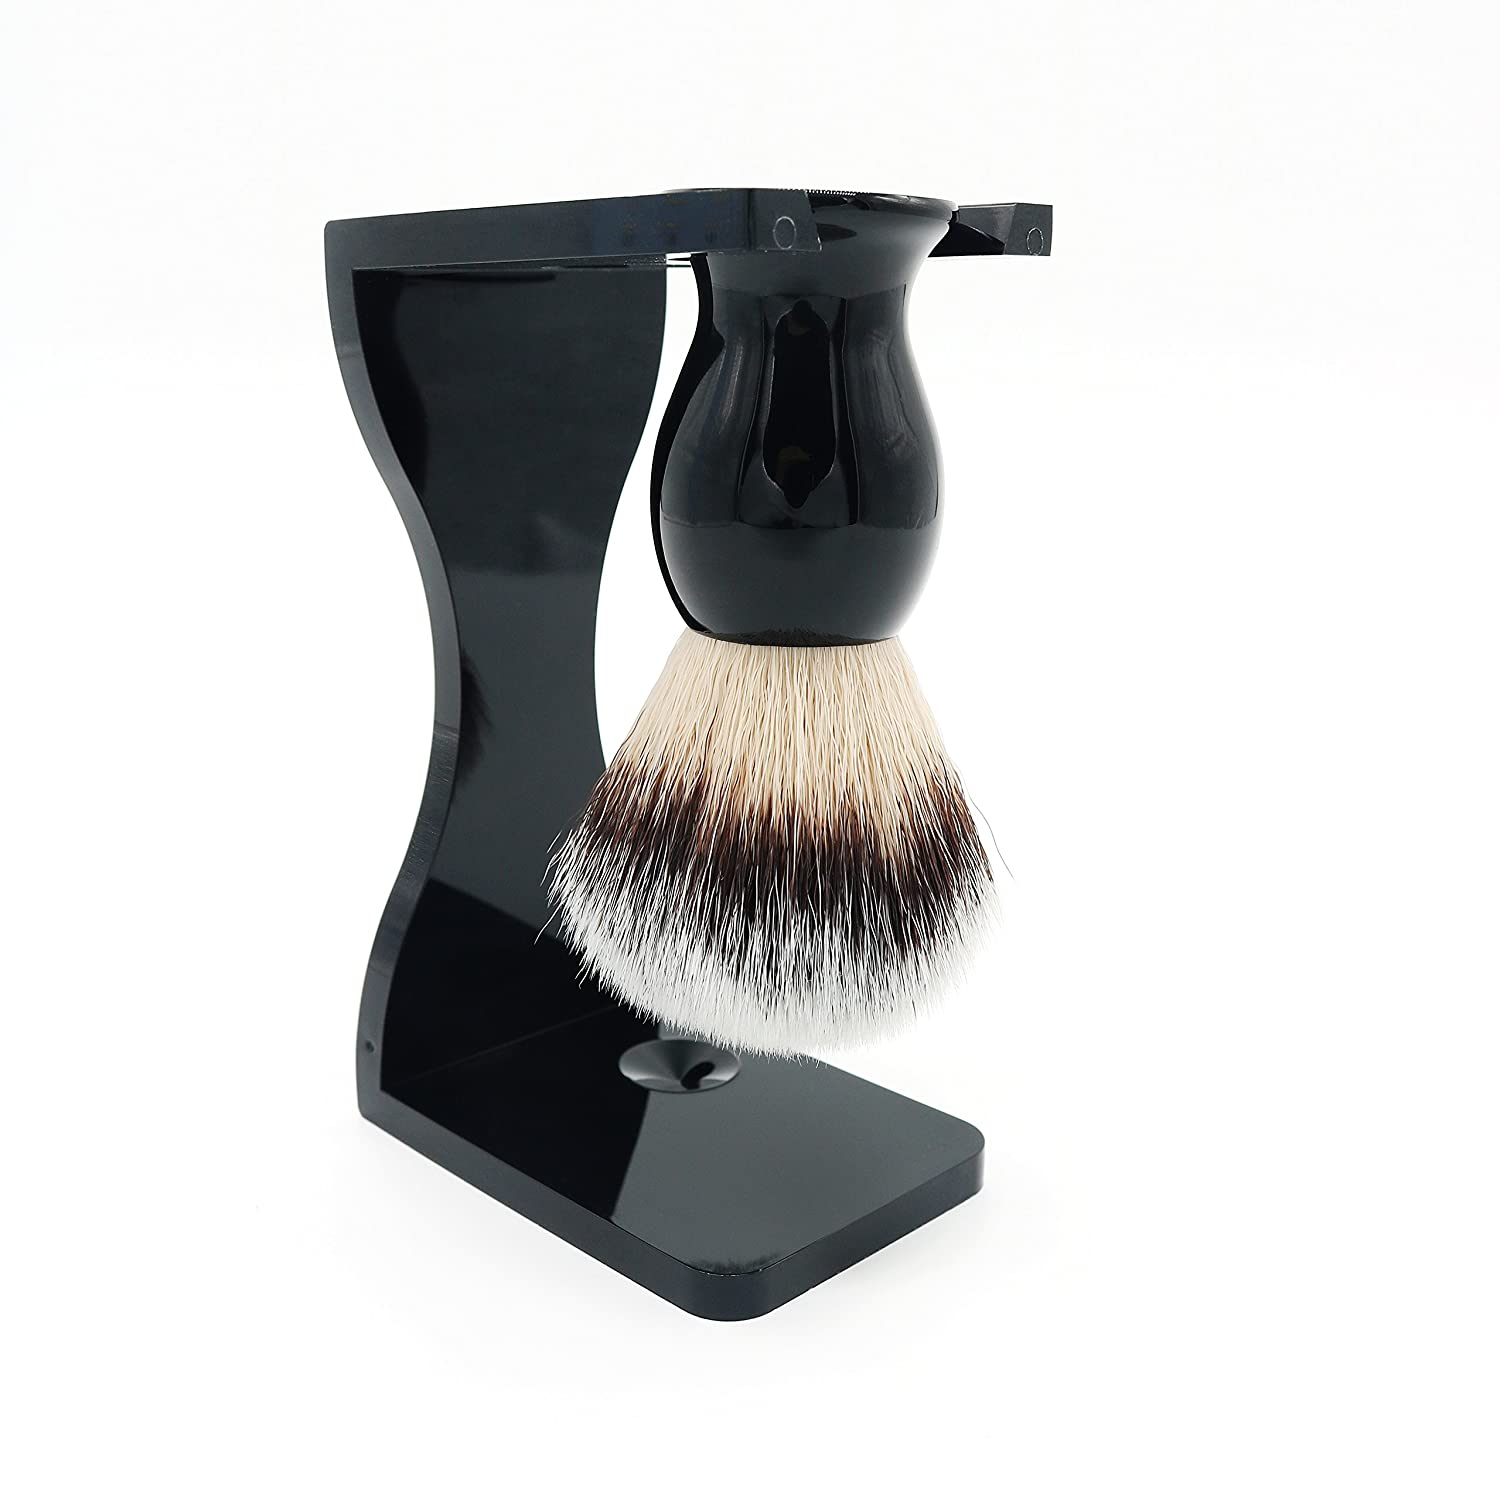 Shaving Brush Set with Black Acrylic Handle and Black Acrylic Shaving Stands by JDK JDK Makeup